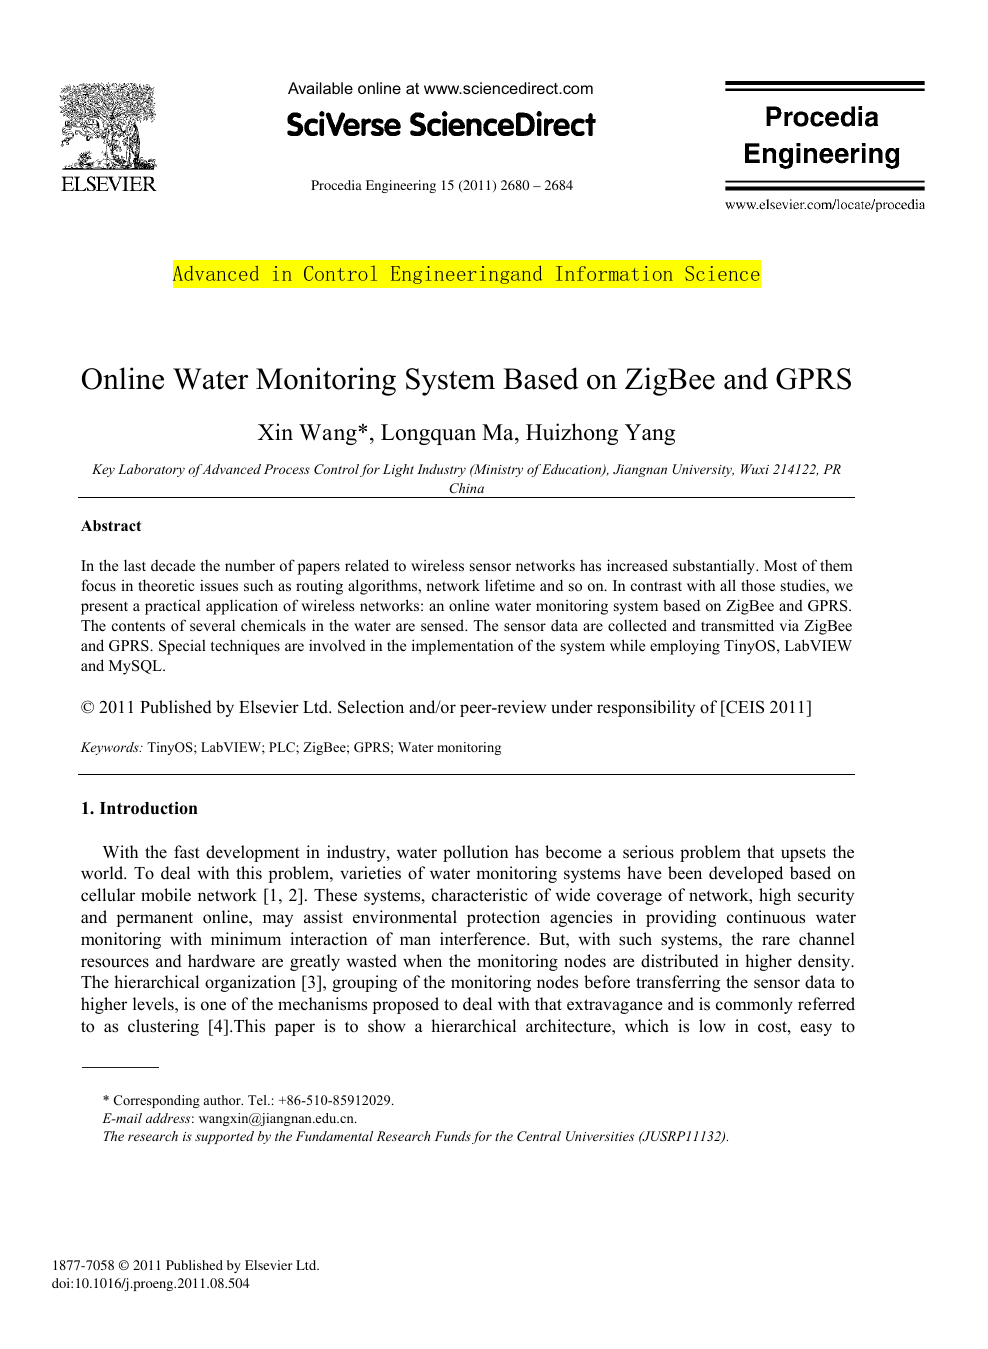 Online Water Monitoring System Based on ZigBee and GPRS – topic of